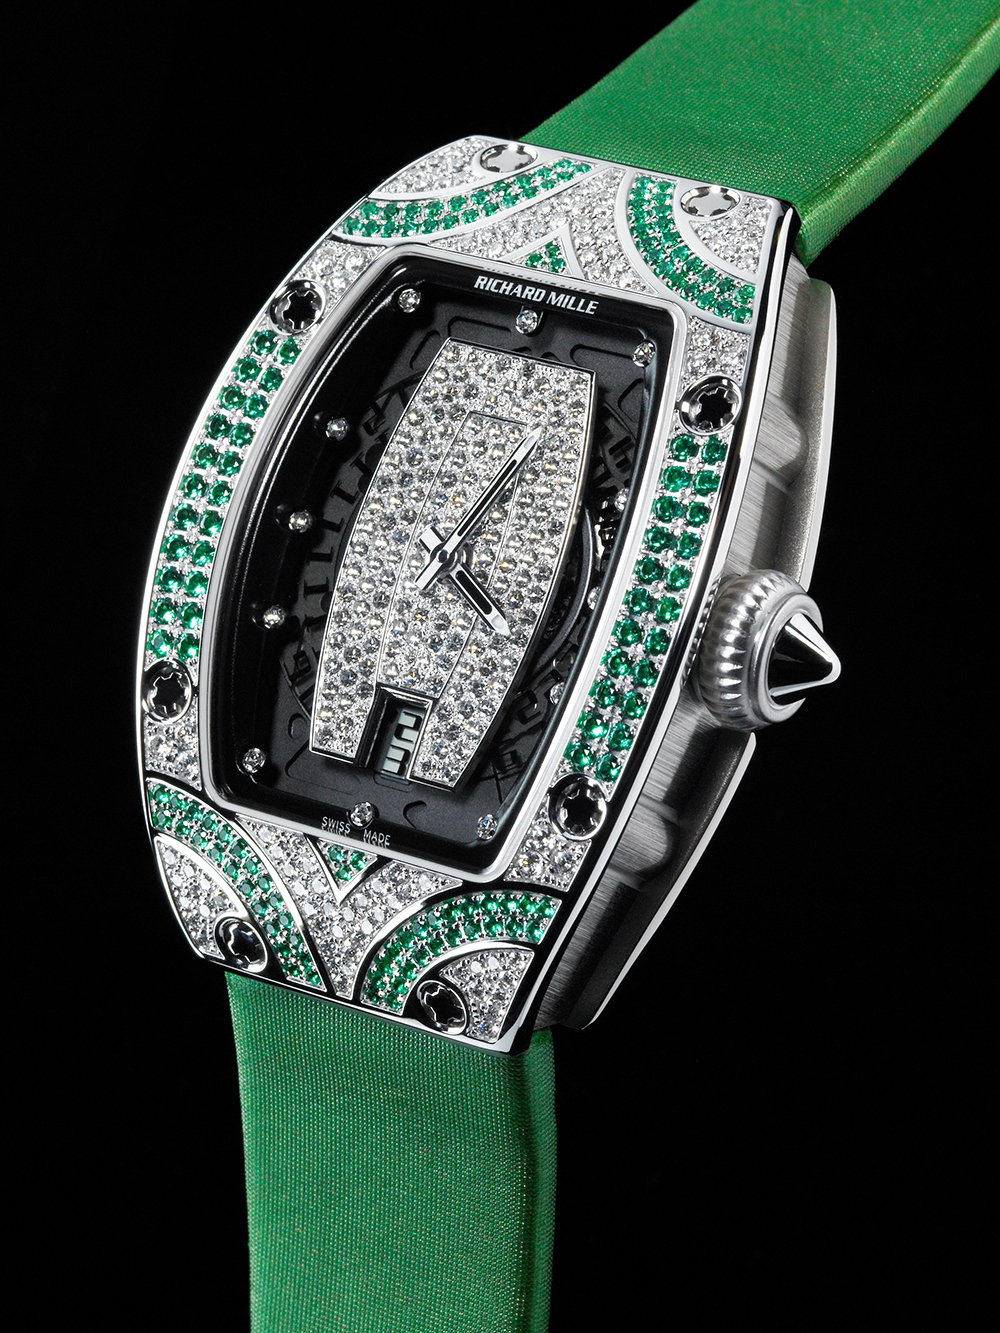 Replica Richard Mille RM 007 white gold set emeralds and diamonds Watch